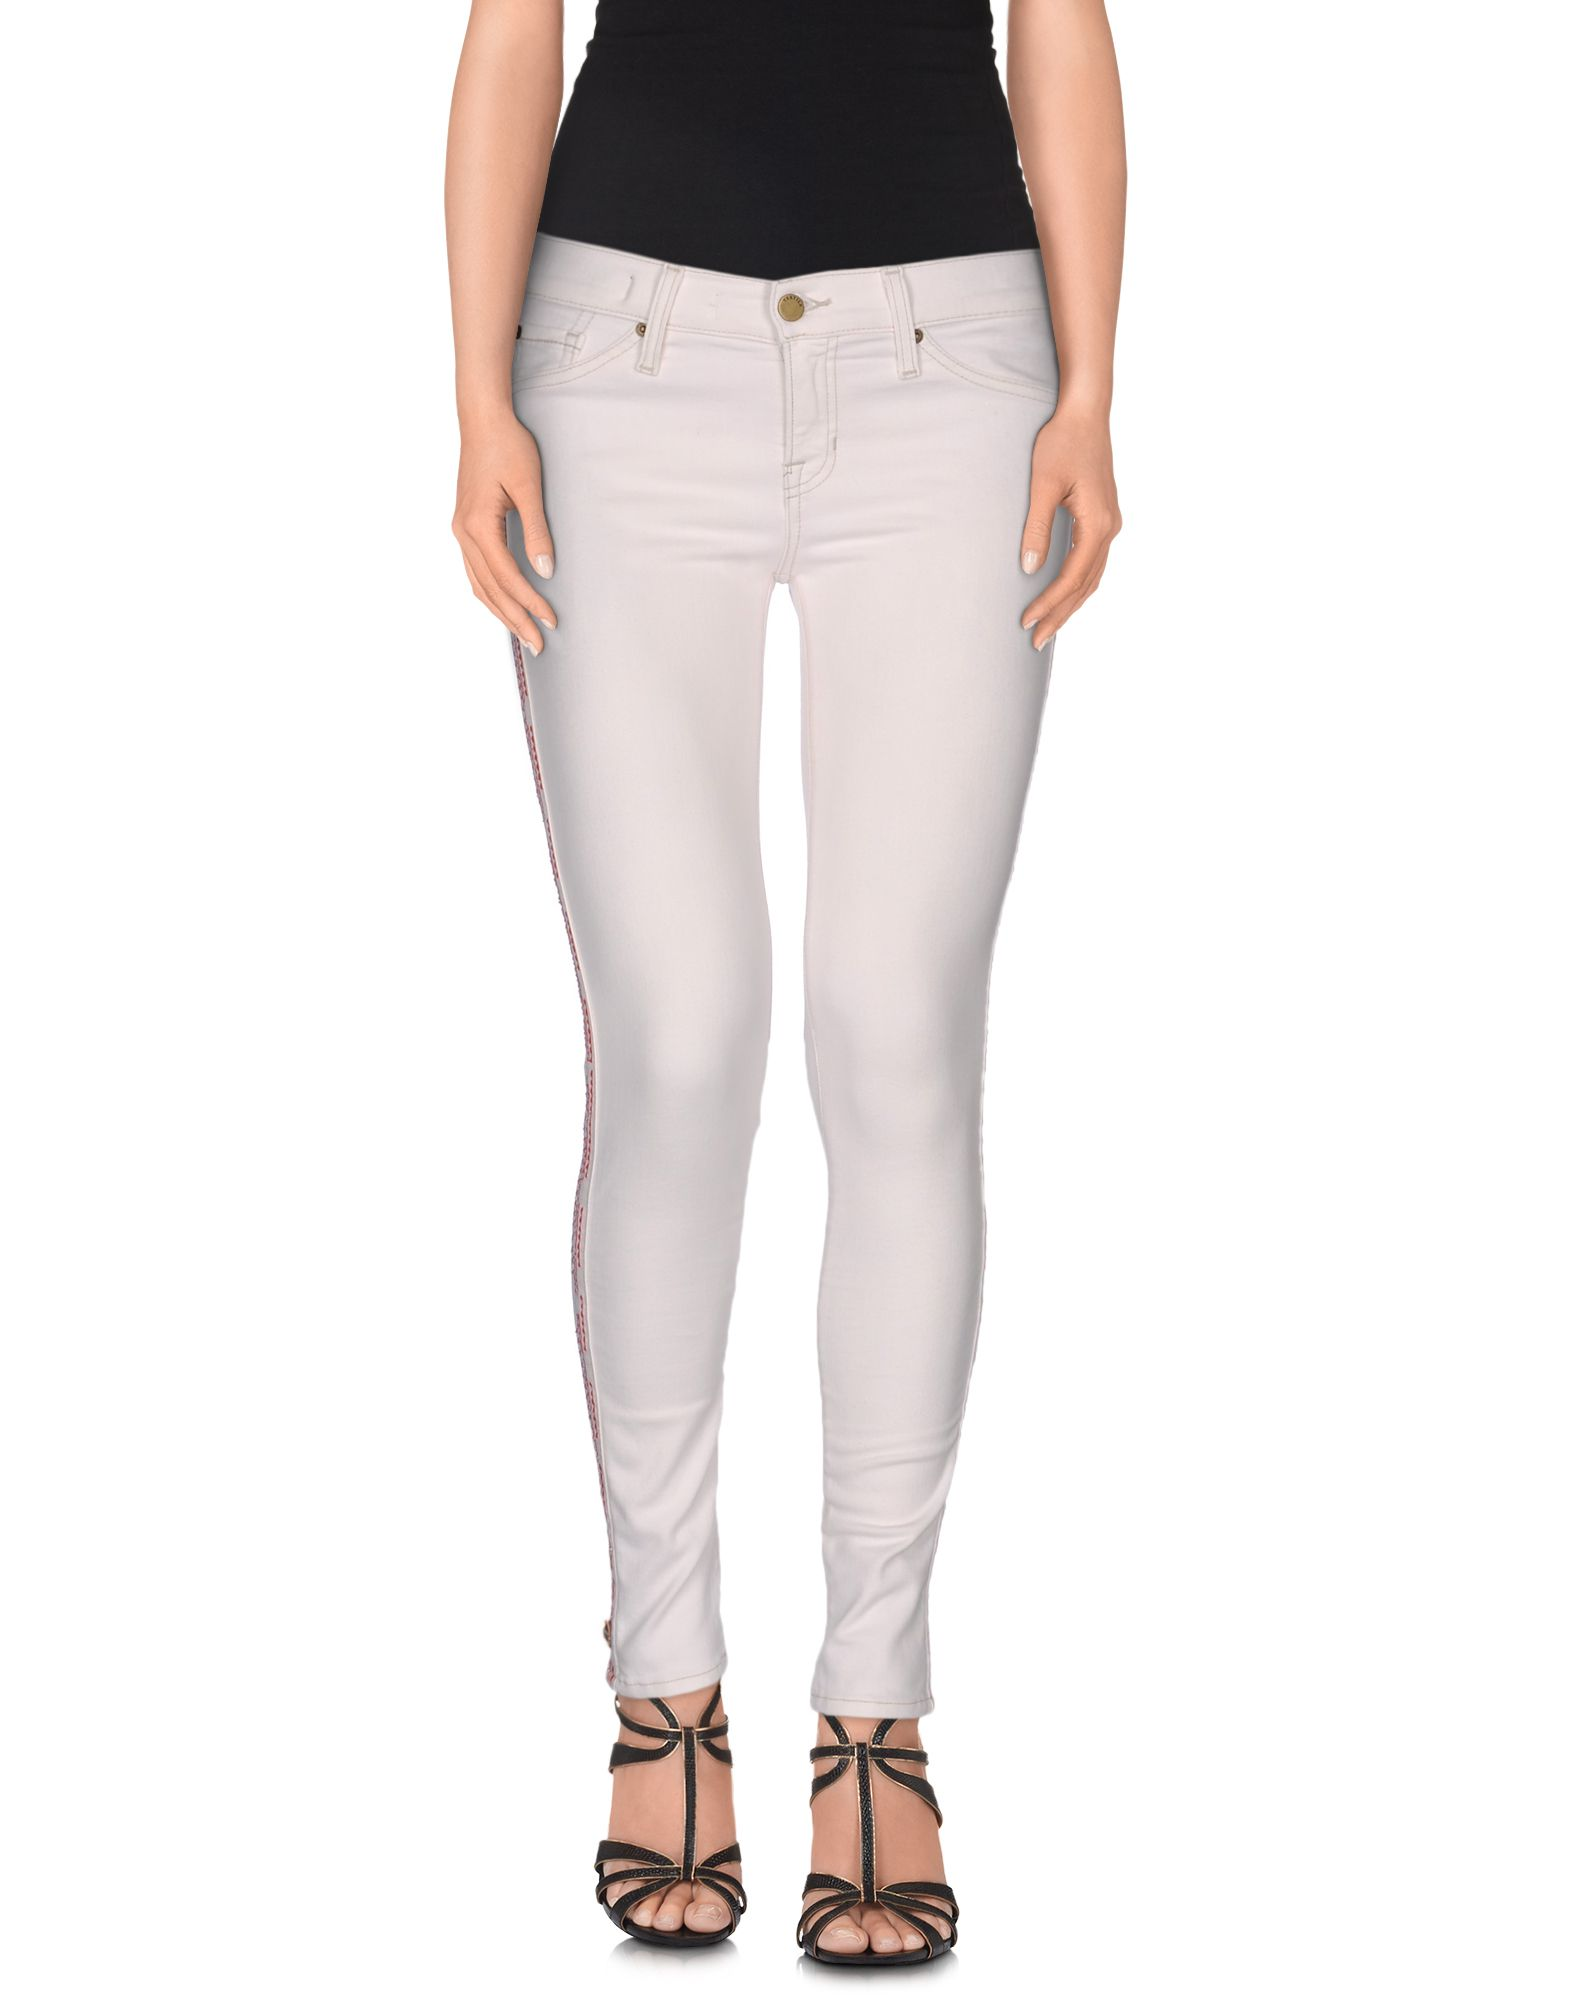 TEXTILE ELIZABETH AND JAMES Denim Pants in White